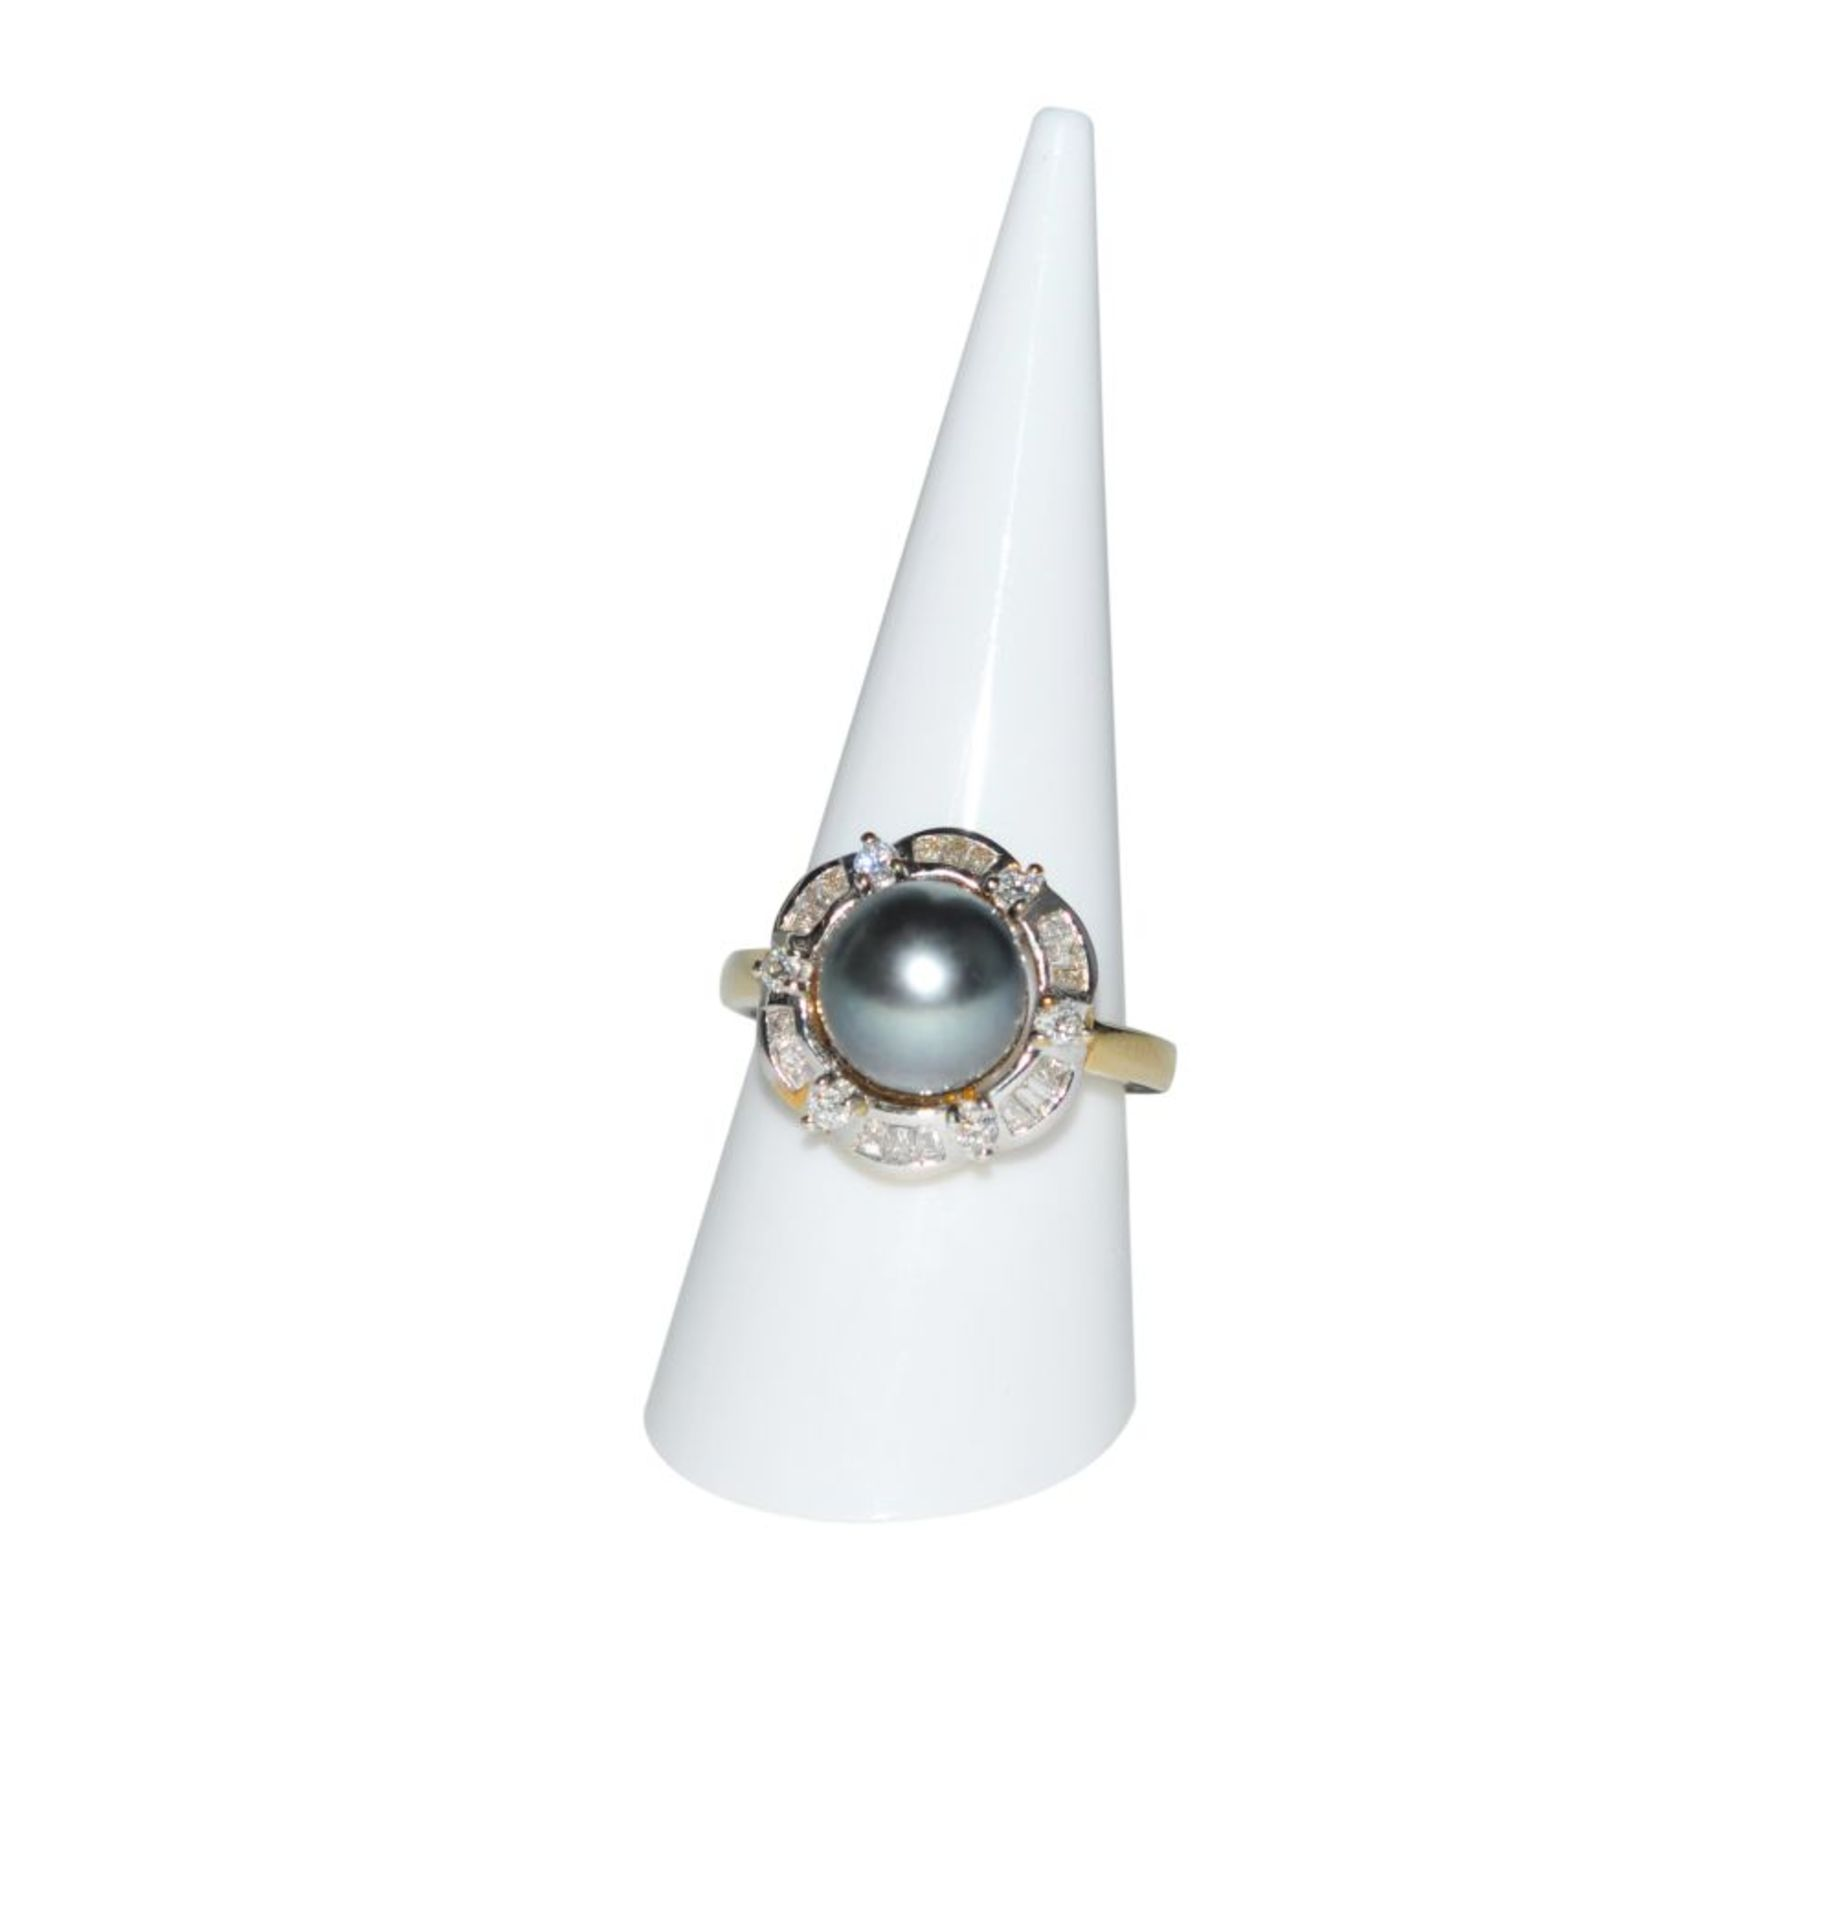 Los 104 - Brilliant ring with South Sea pearl18Kt gold ring with diamonds total carat weight approx. 0.7ct and